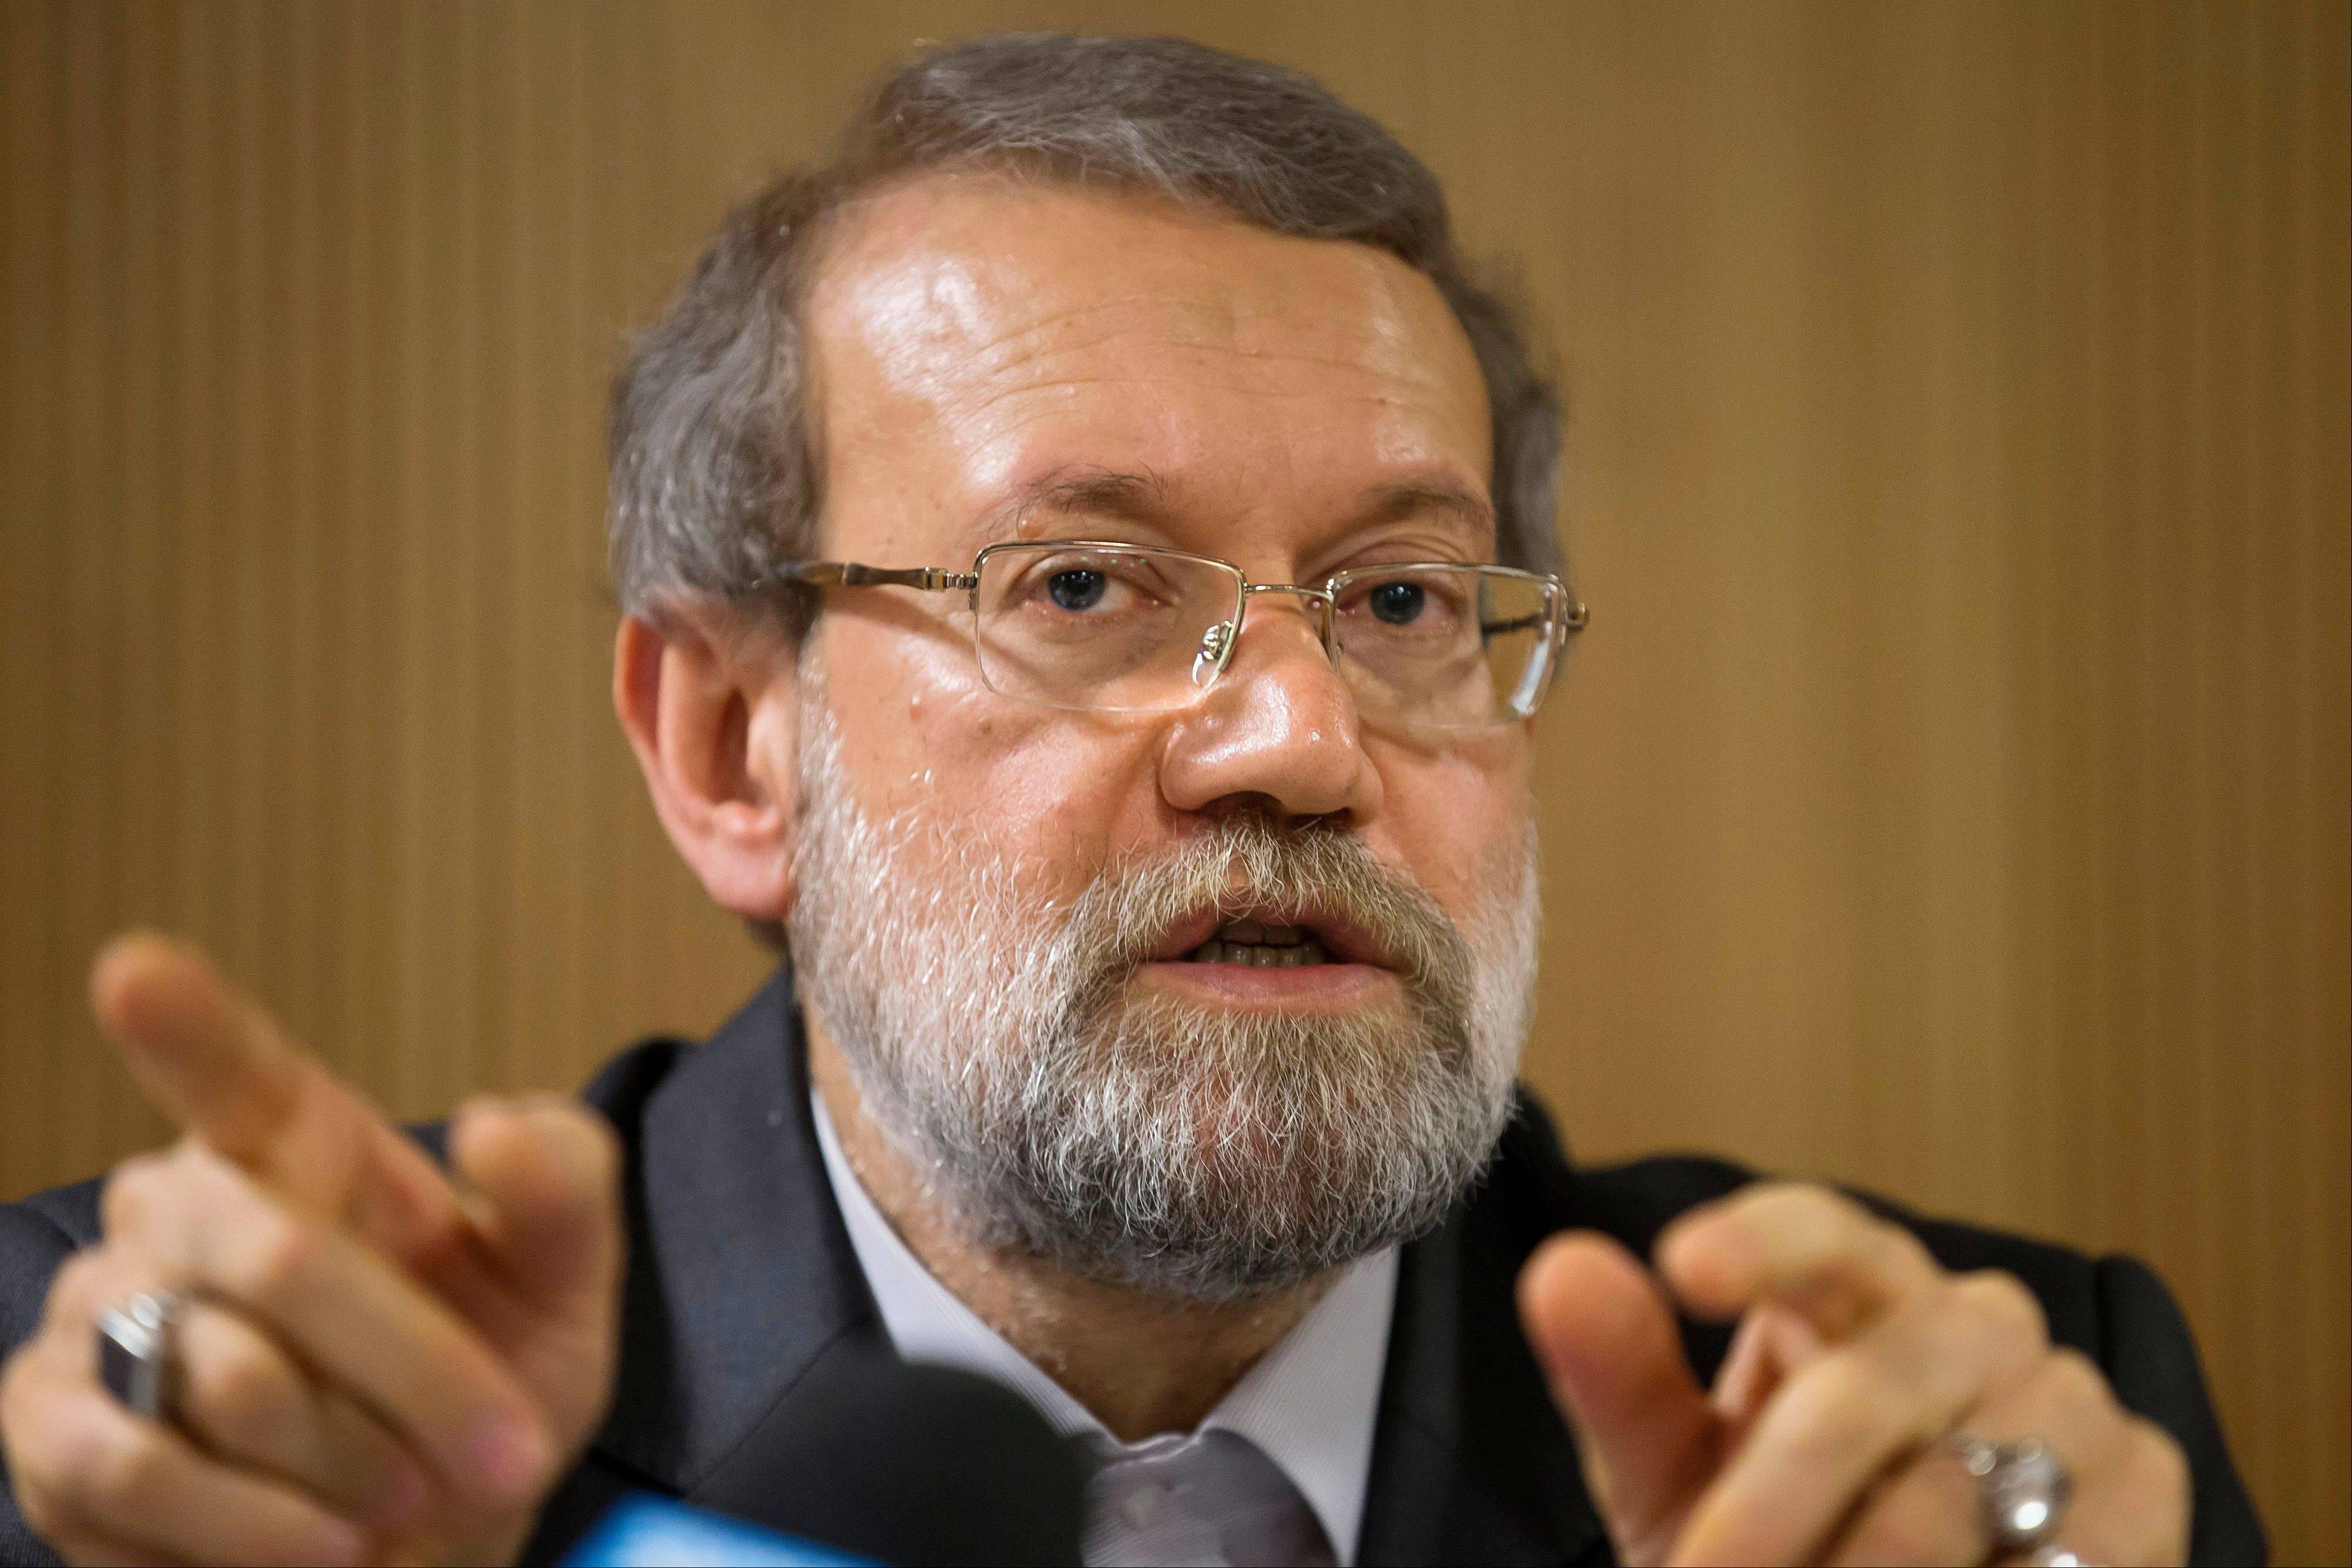 Iran�s Parliament speaker Ali Larijani answers a question during a press conference on the sidelines of the 129th Assembly of the Inter-Parliamentary Union (IPU), in Geneva, Switzerland, Wednesday, Oct. 9, 2013. In an Associated Press interview, Larijani saidIran has more enriched uranium than it needs and plans to use that as a bargaining chip at nuclear talks in Geneva next week.